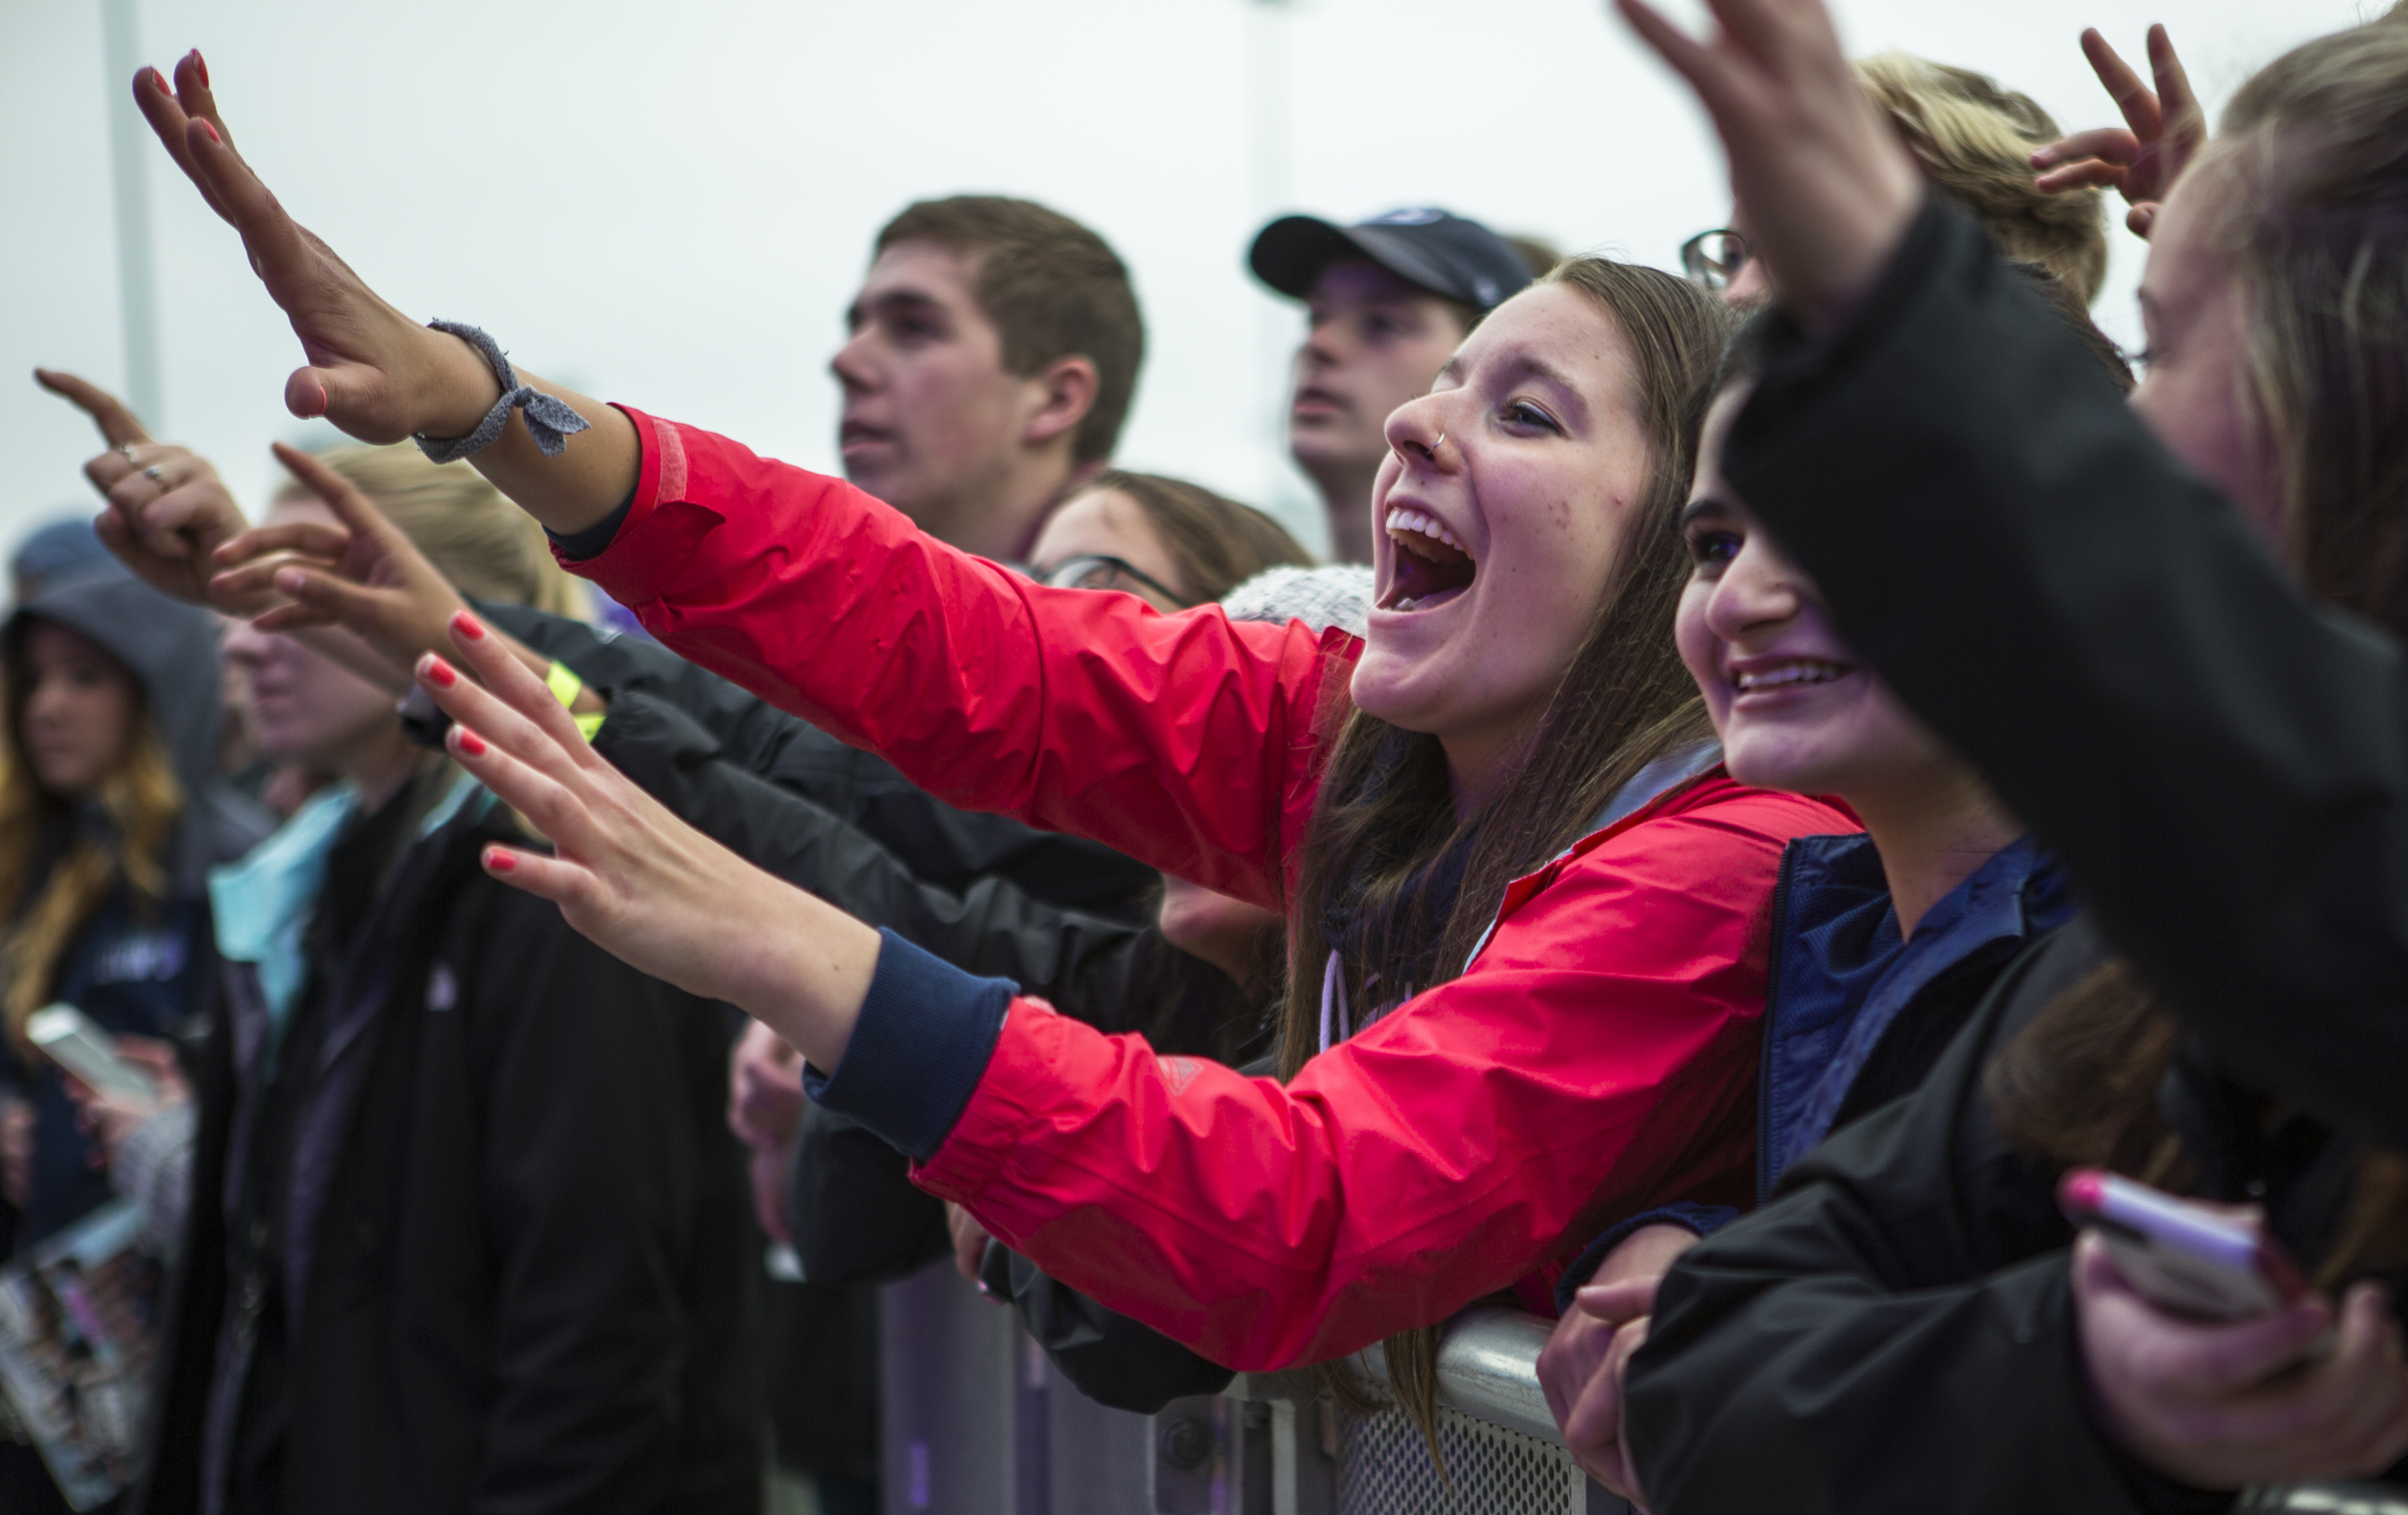 Fans cheer for Misterwives as they perform at Movin' On Music Festival on the IM fields on Friday, April 29, 2016.